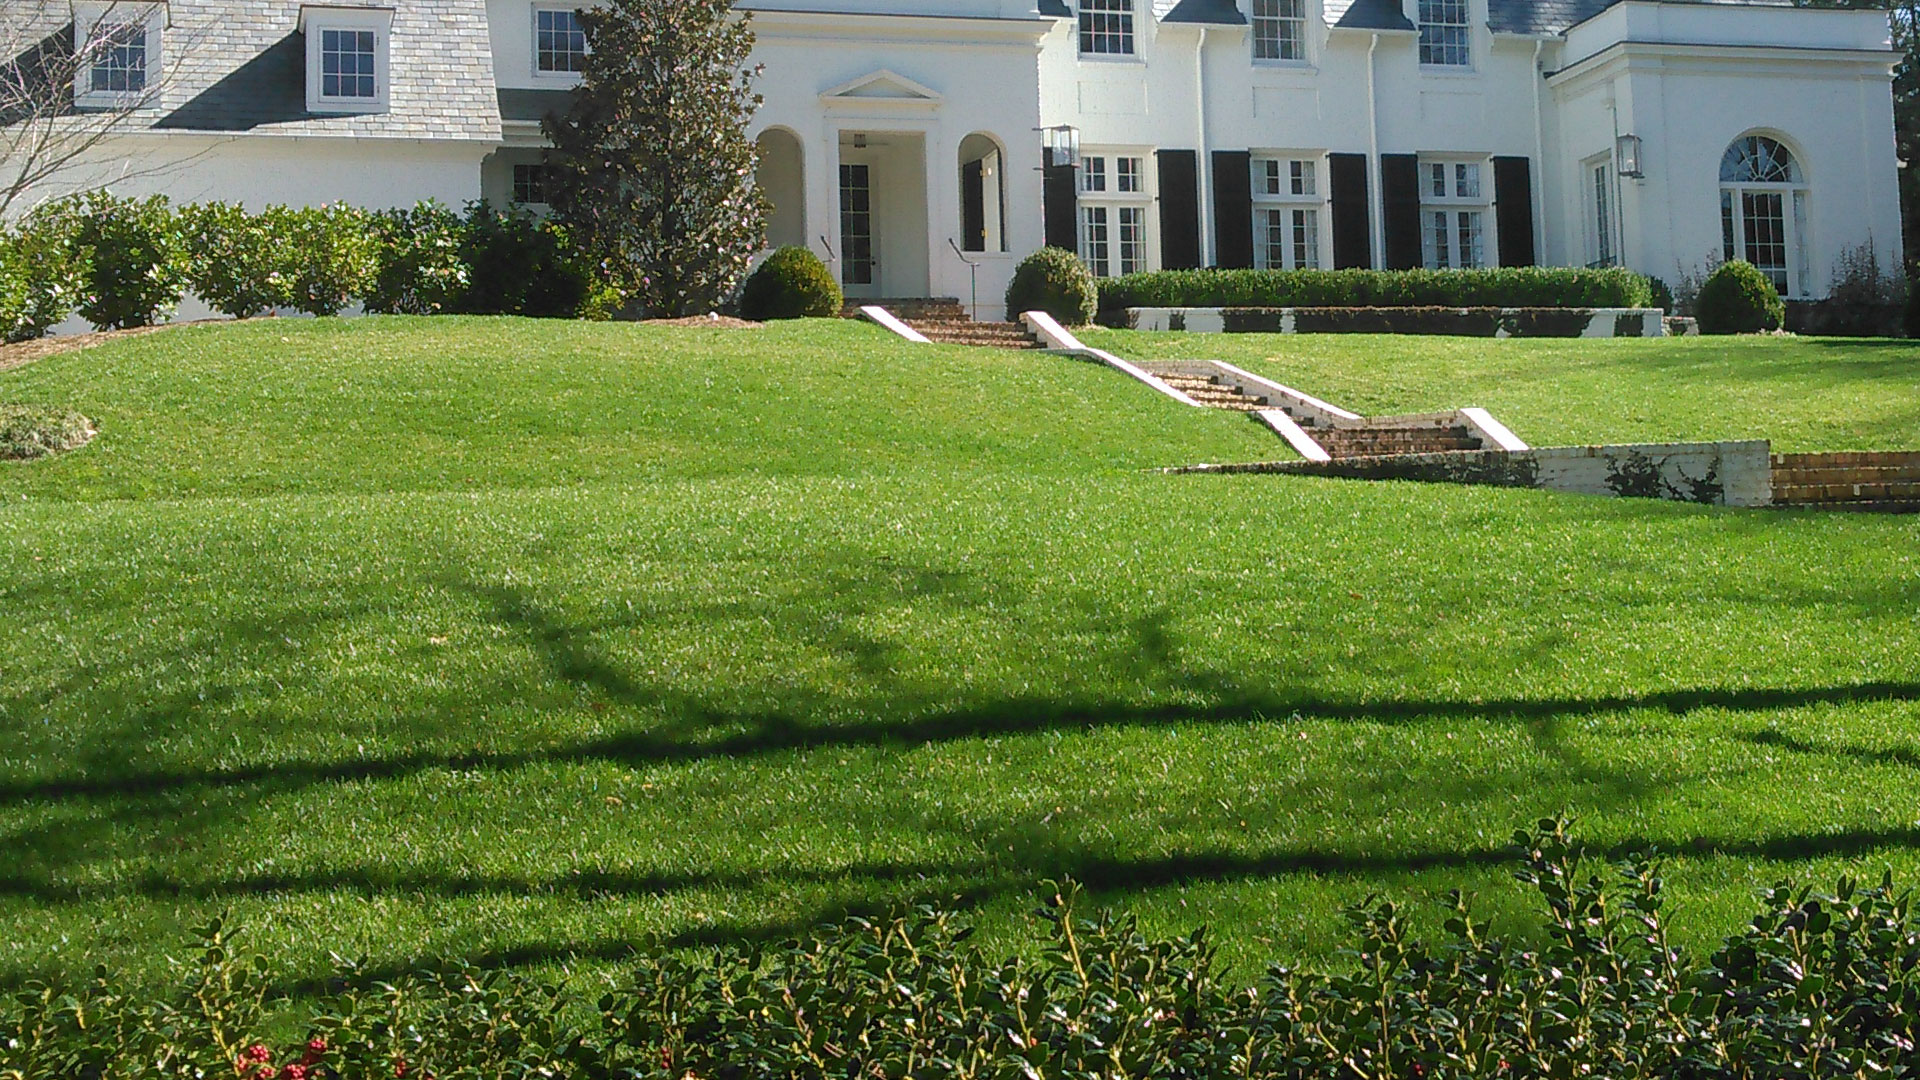 This green healthy lawn was aerated and over seeded during the spring time.